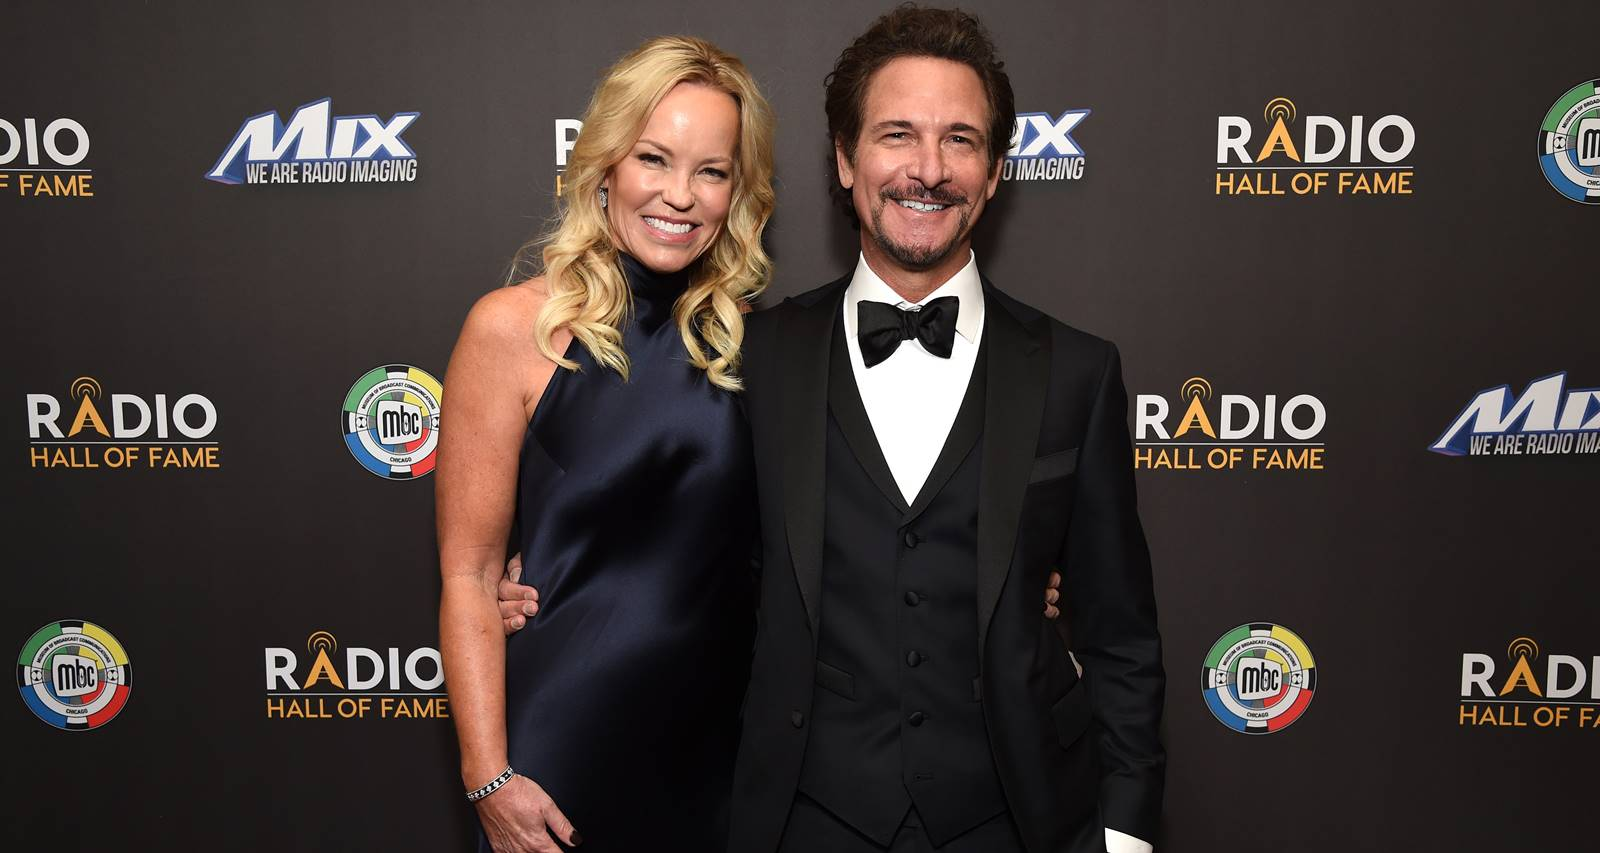 Jim Rome's Wife: Janet Rome Wiki, Age, Family and Facts To Know